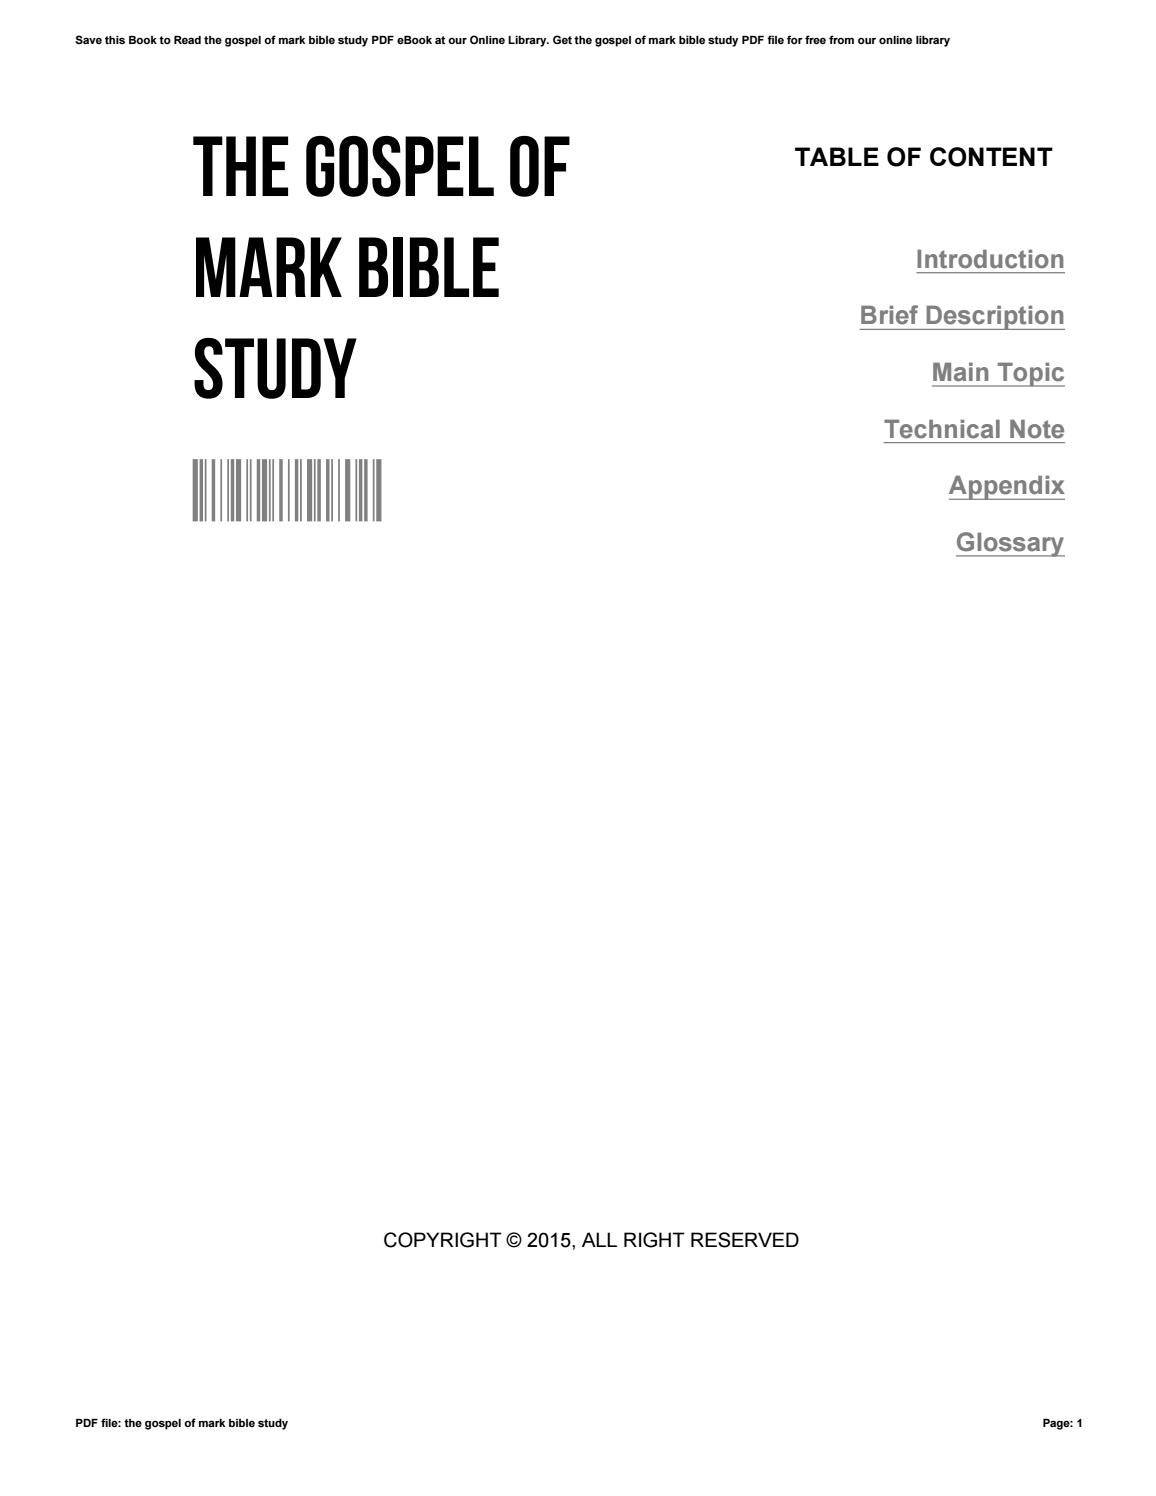 The gospel of mark bible study by AnnePhillips4299 - issuu